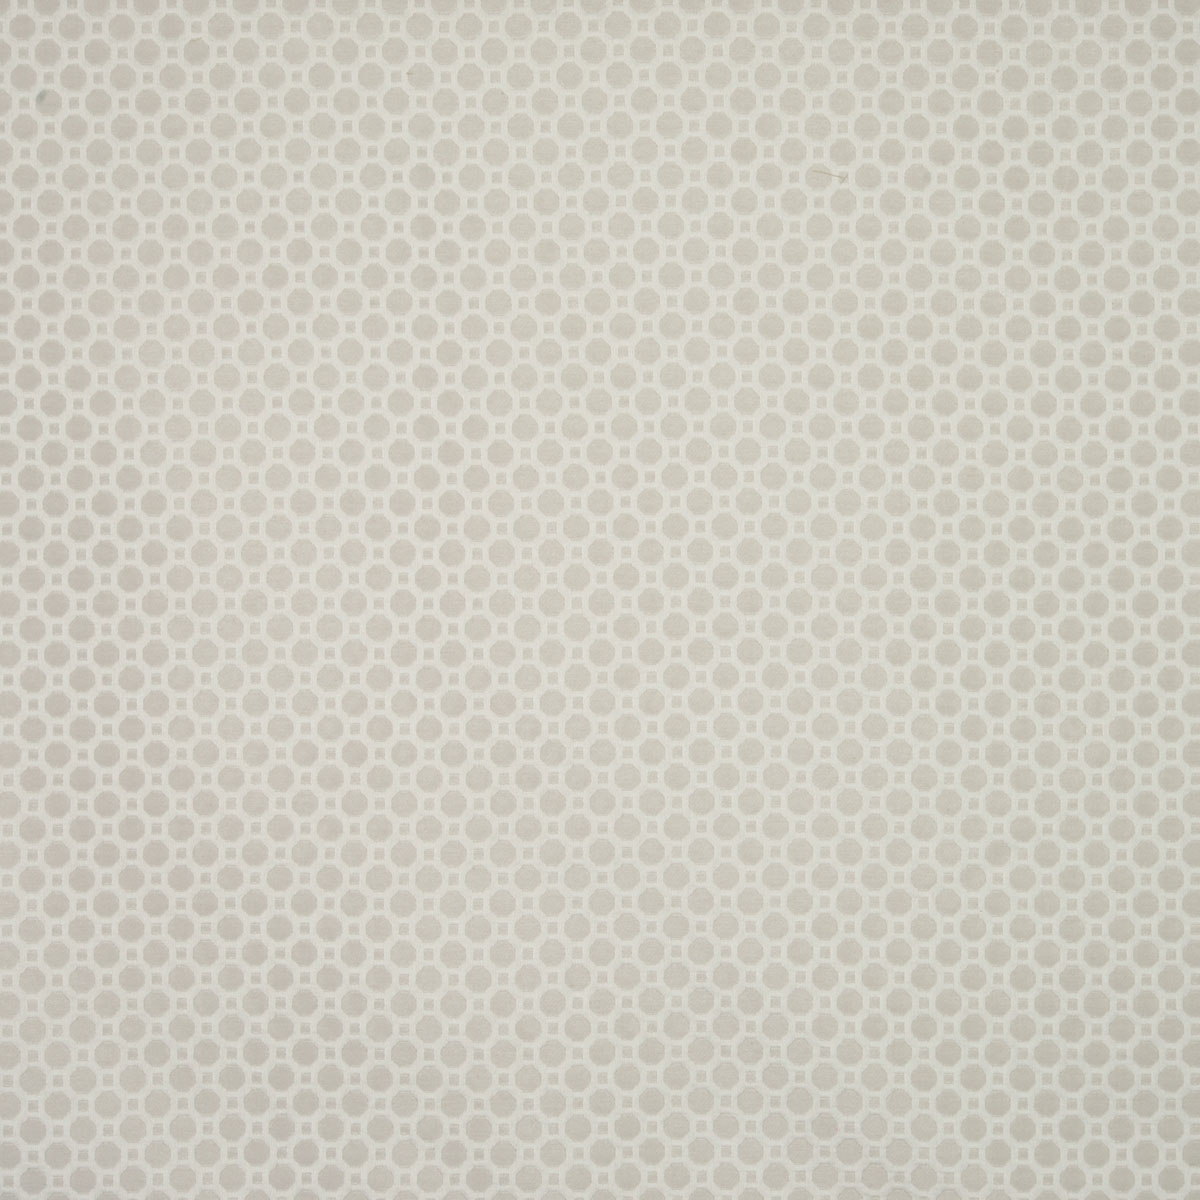 Honeycomb Curtain Fabric Free Uk Delivery Terrys Fabrics With Regard To Natural Fabric Curtain (Image 7 of 15)